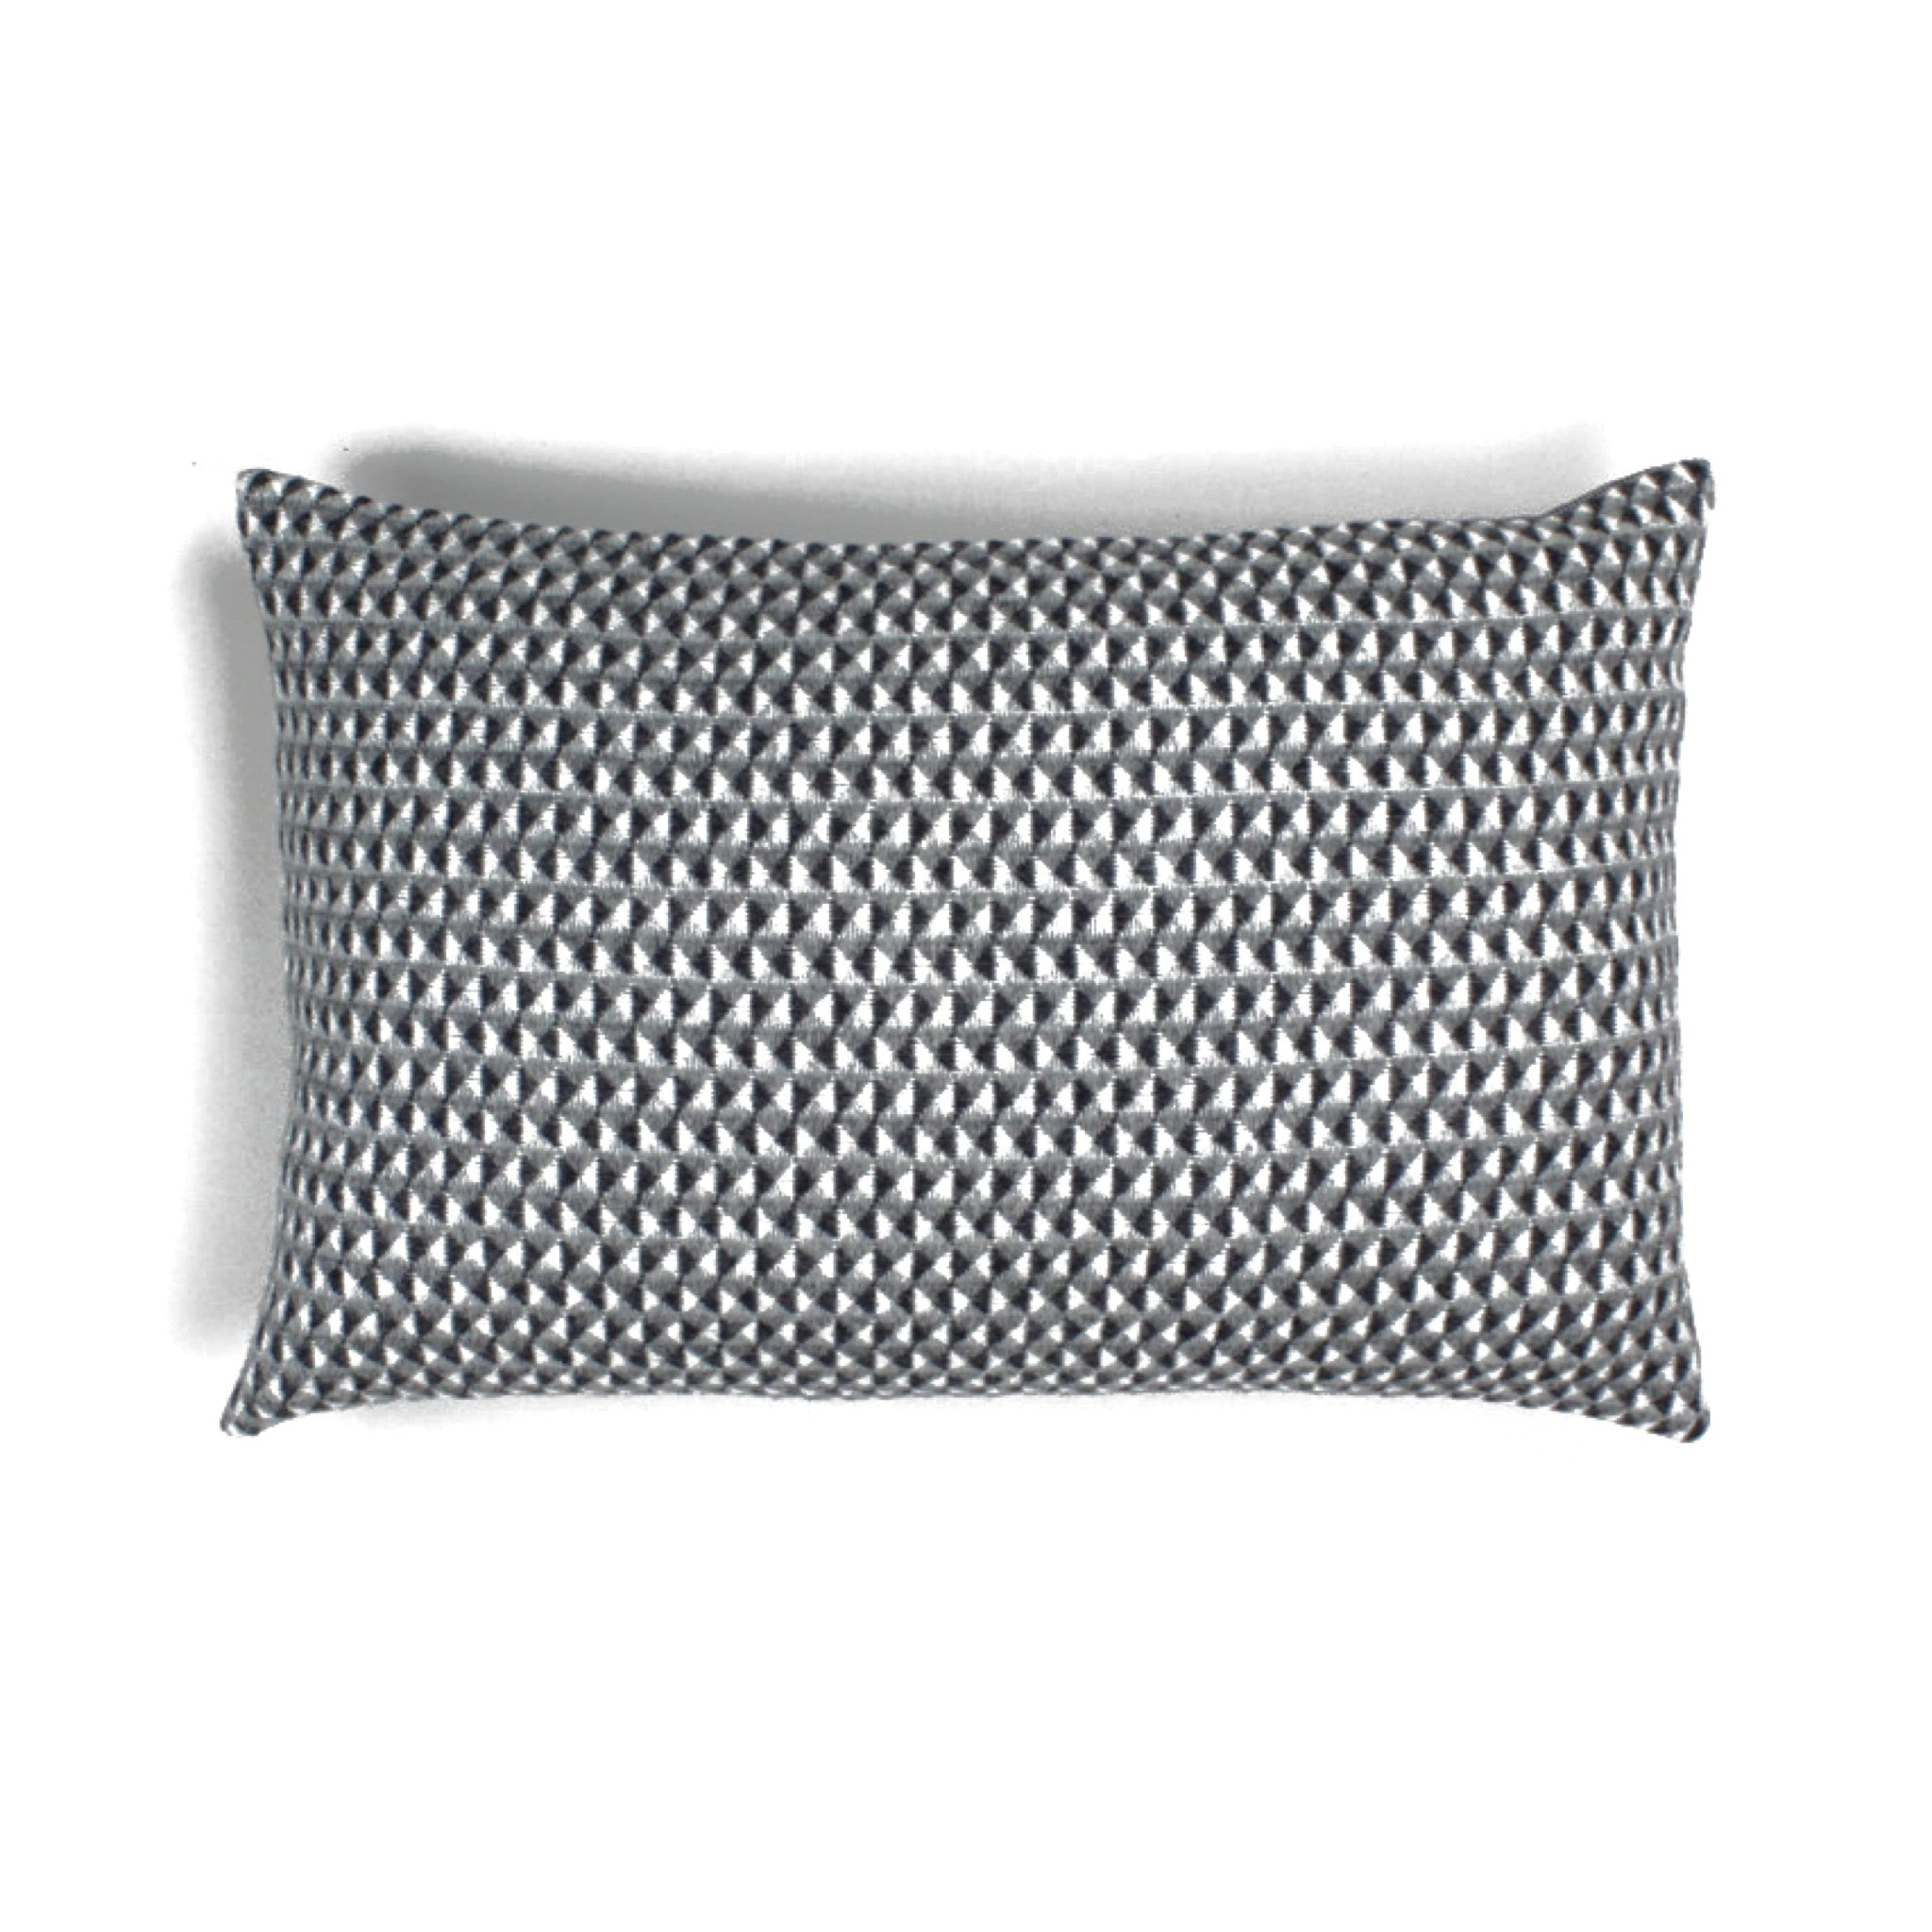 Square Peg Cushion by Eleanor Pritchard